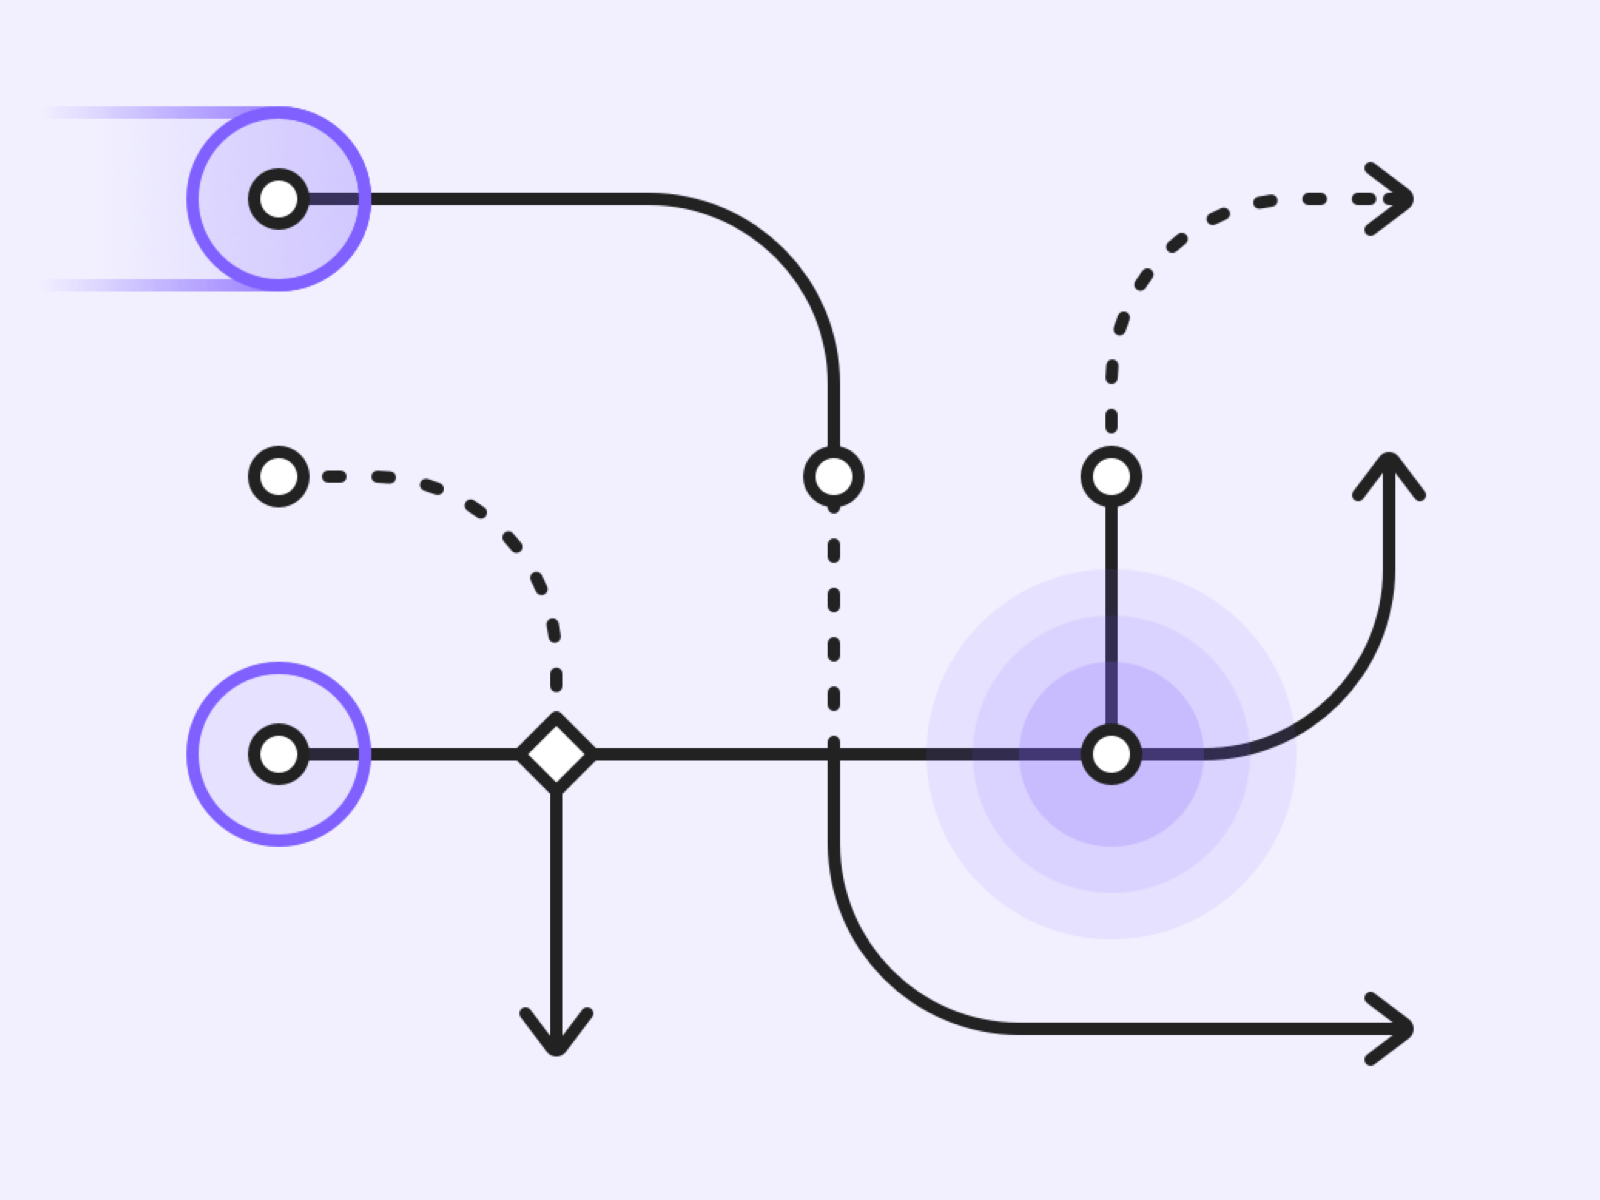 Example of some arrows from the Flowkit product